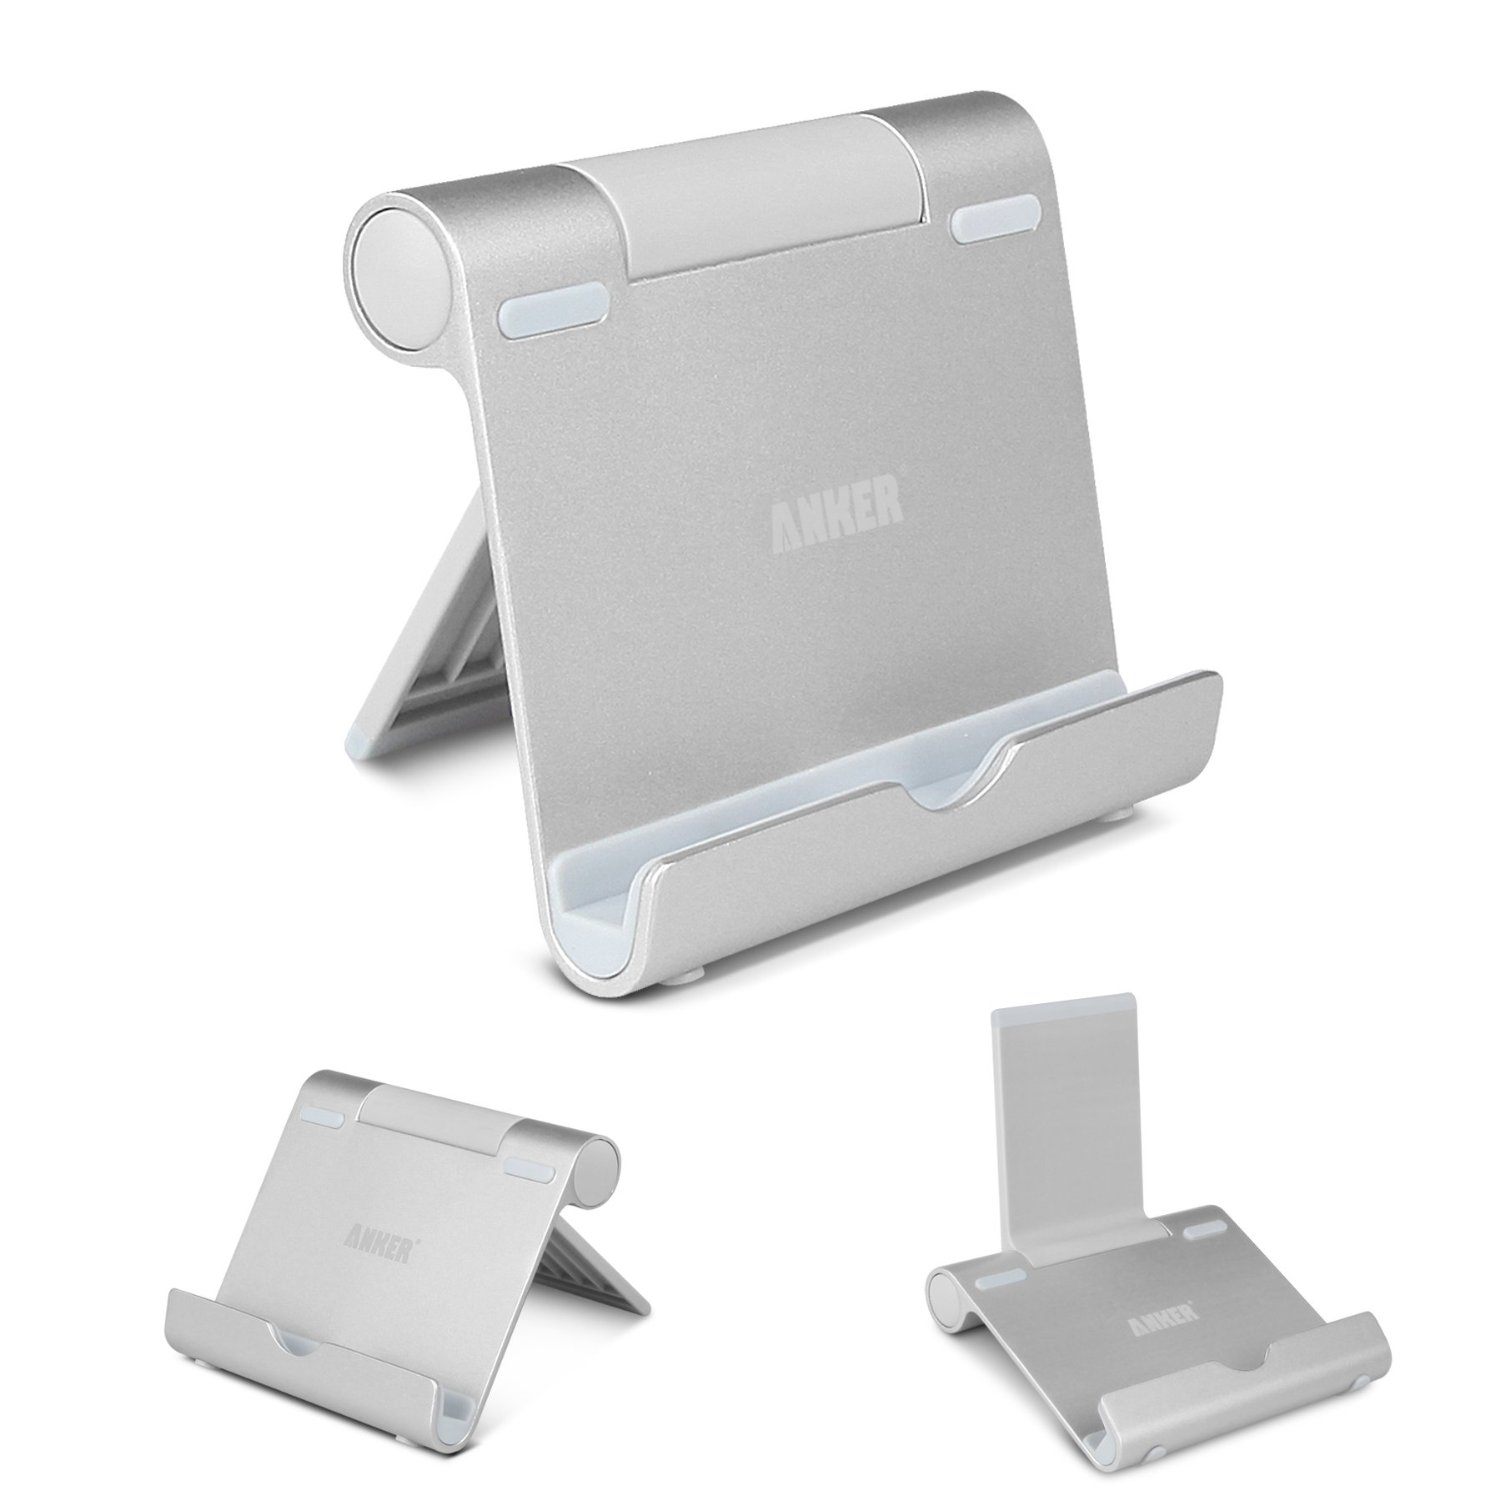 Anker Tablet Stand